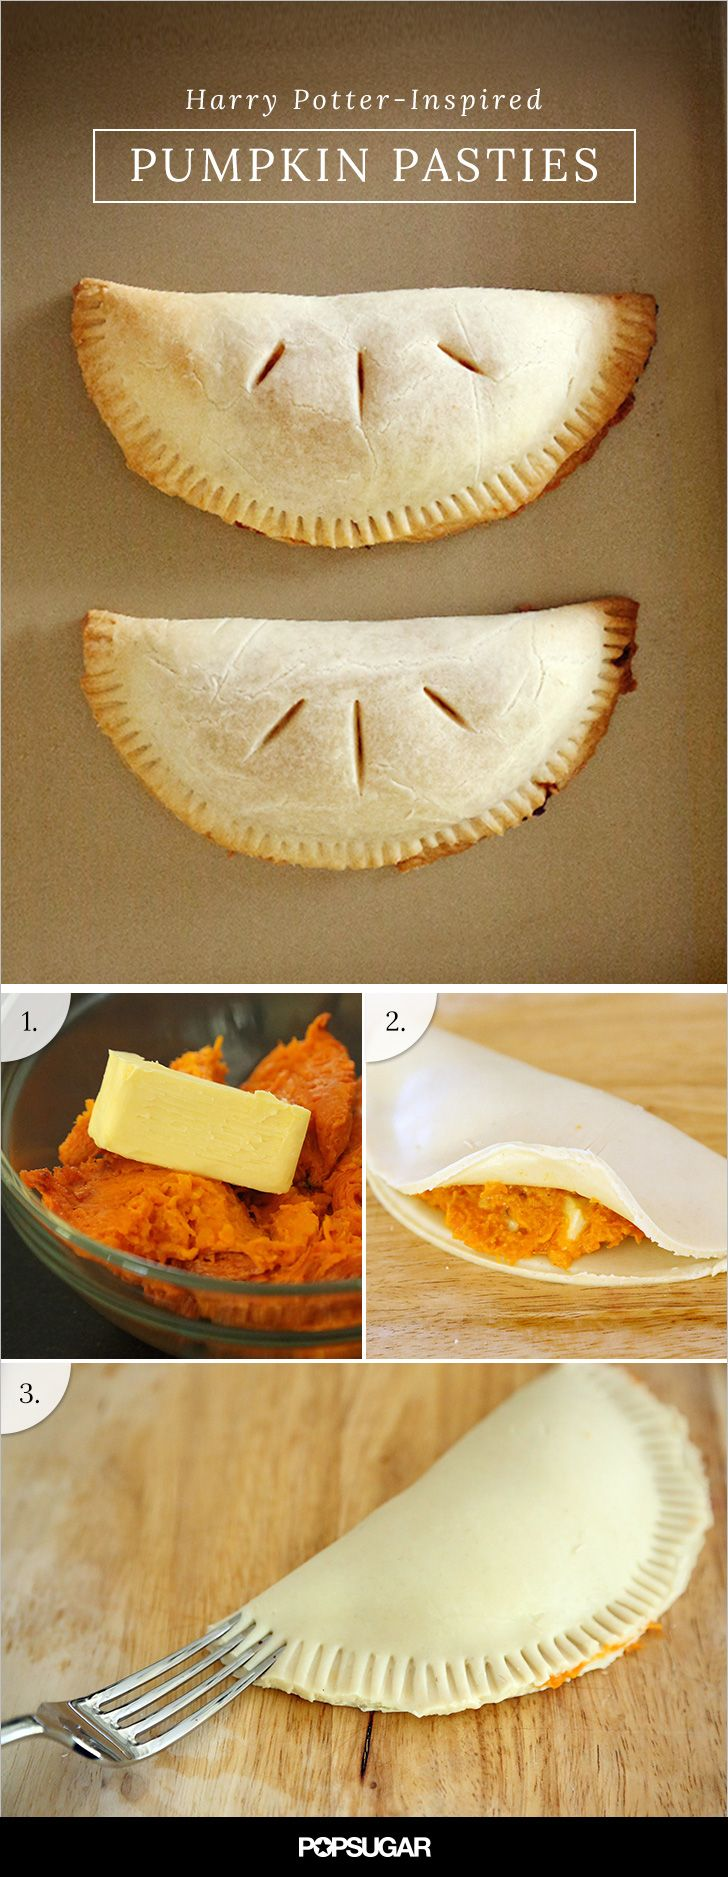 Let These Harry Potter Inspired Pumpkin Pasties Cast A Spell On Your Taste Buds Recipe Pumpkin Pasties Food Pasties Recipes